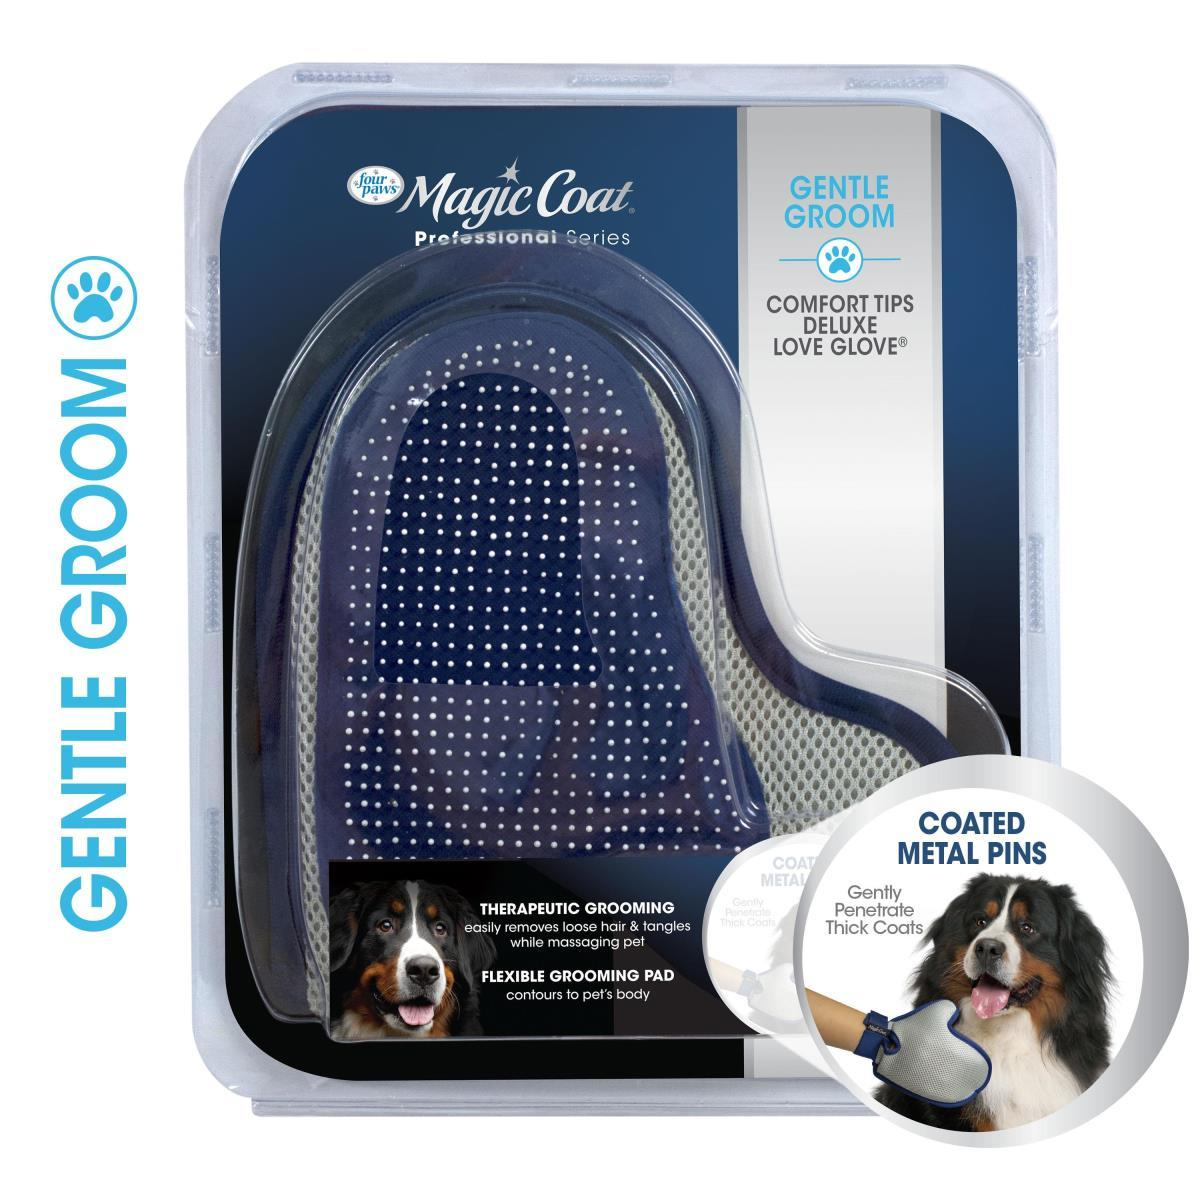 Four Paws Magic Coat Professional Series Comfort Tips Deluxe Love Glove for Dogs Image